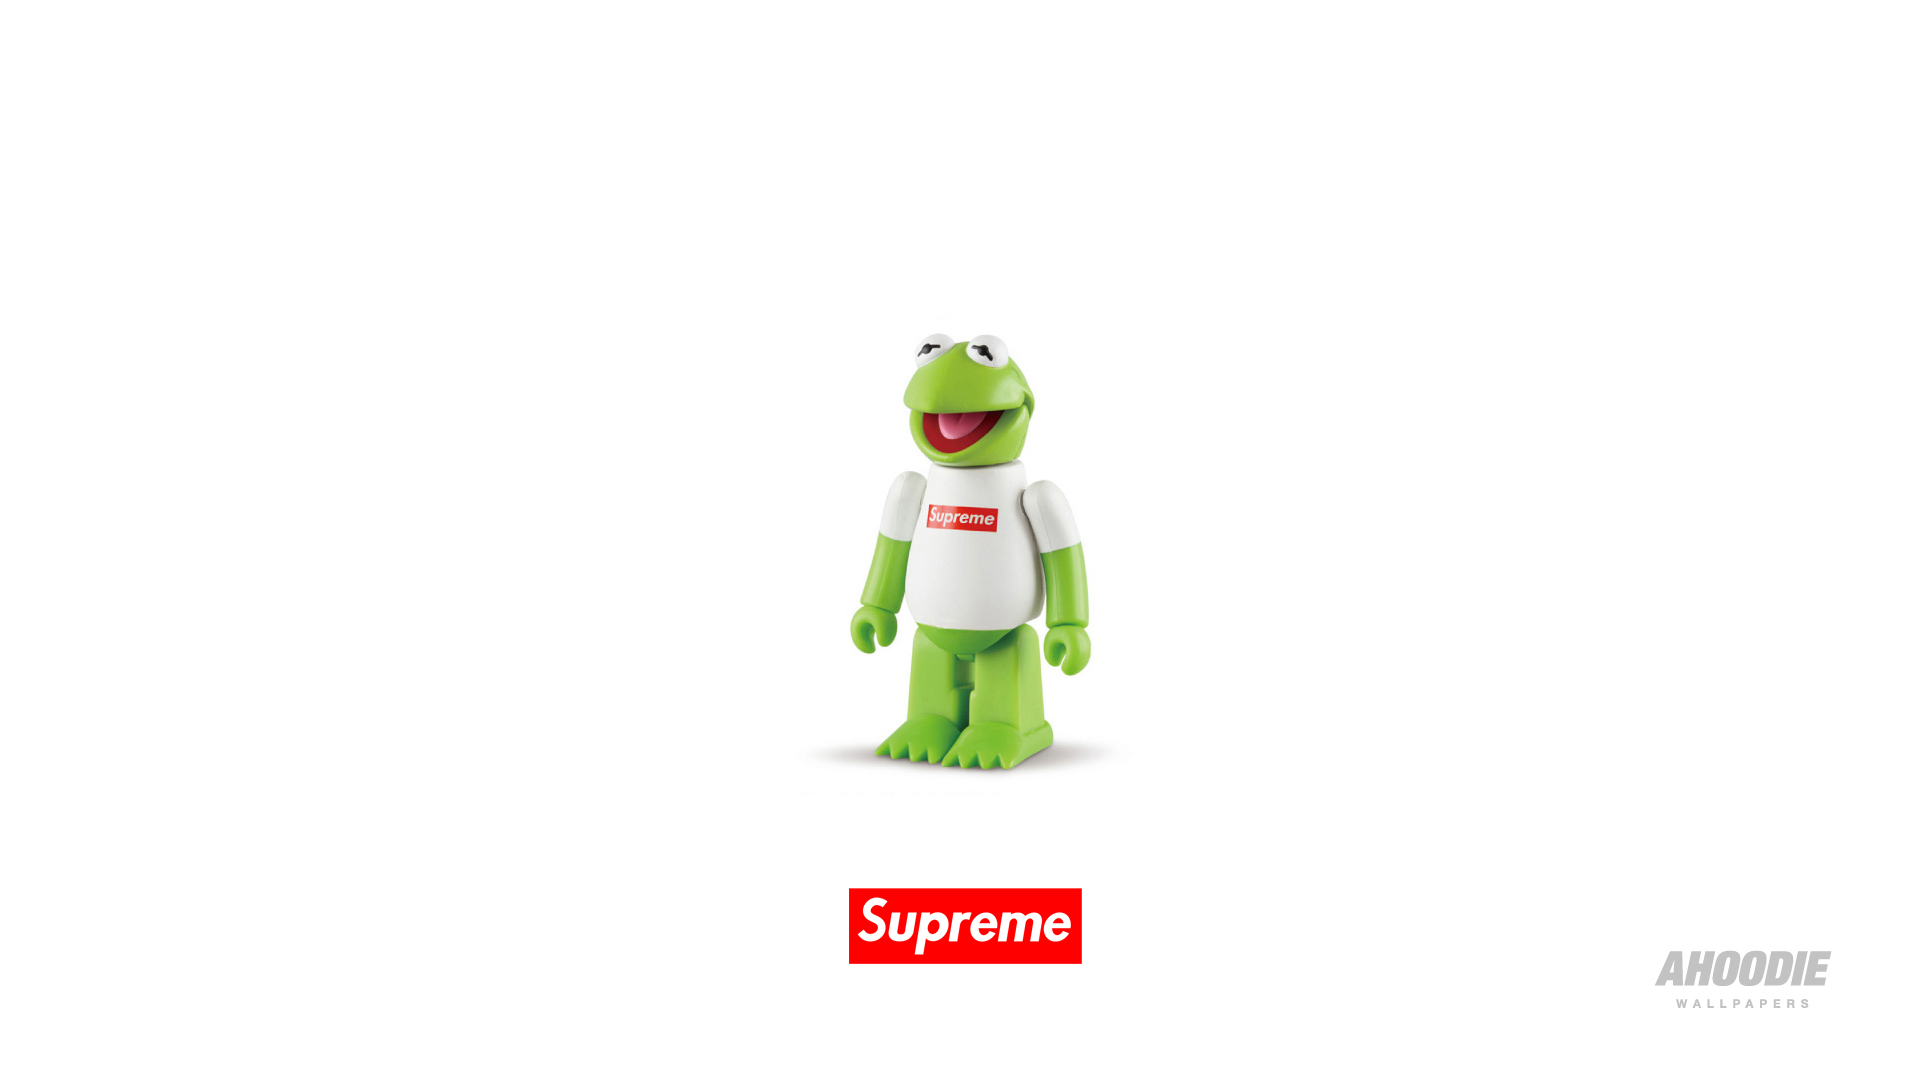 Supreme Kermit wallpaper 153249 1920x1080